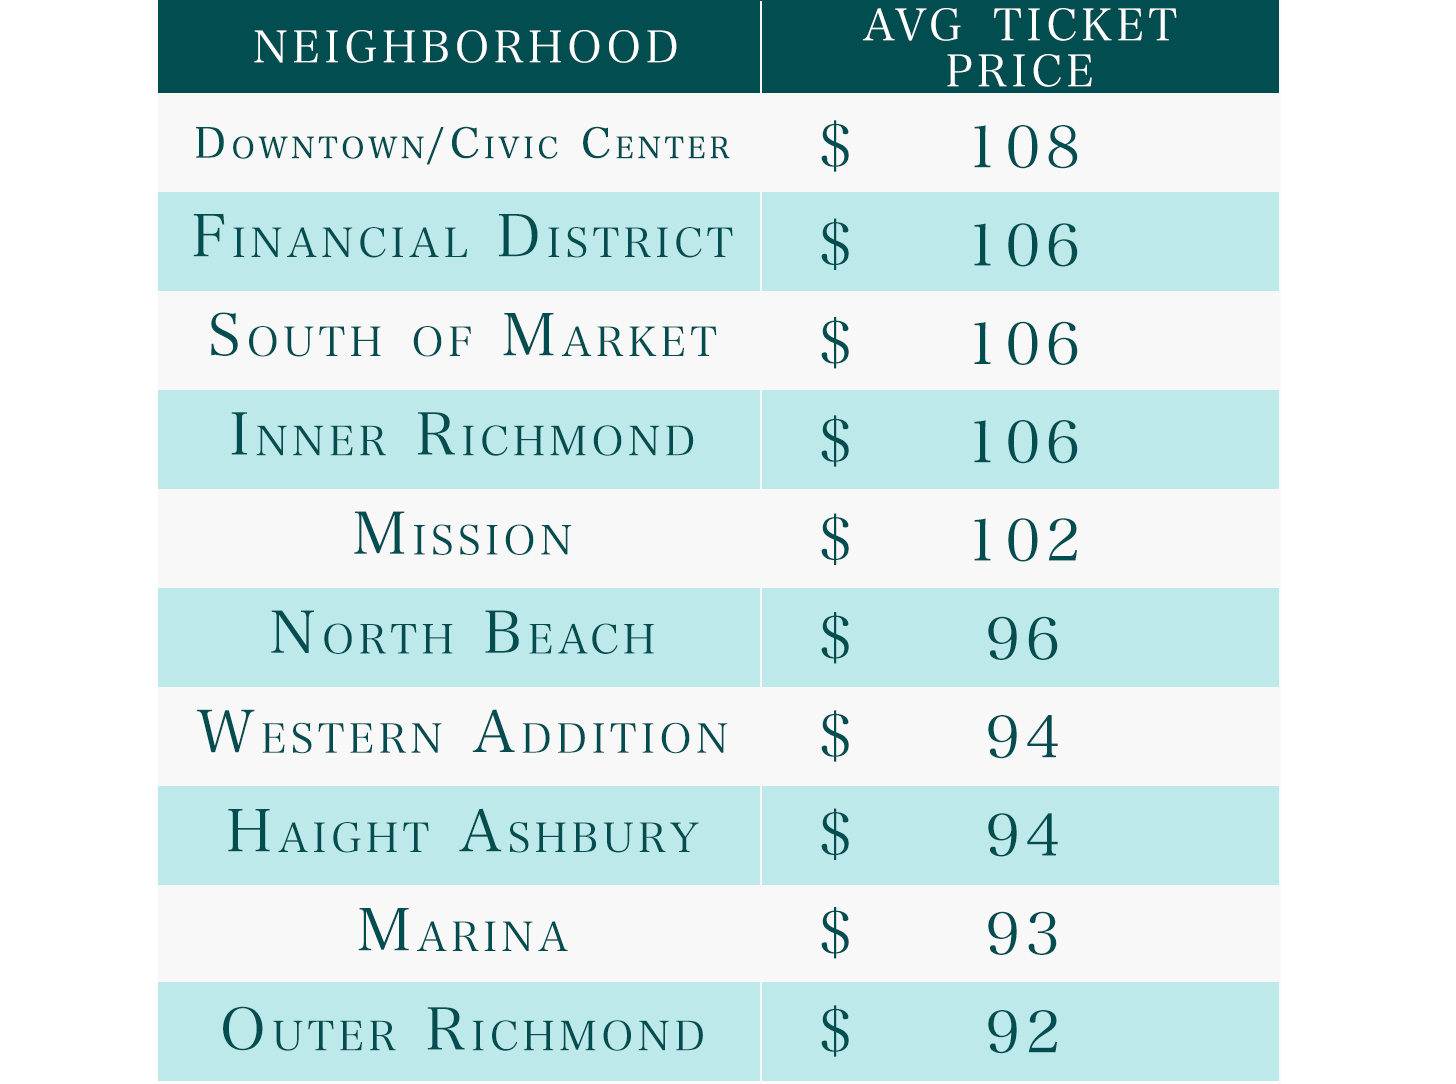 sf most ticketed neighborhoods